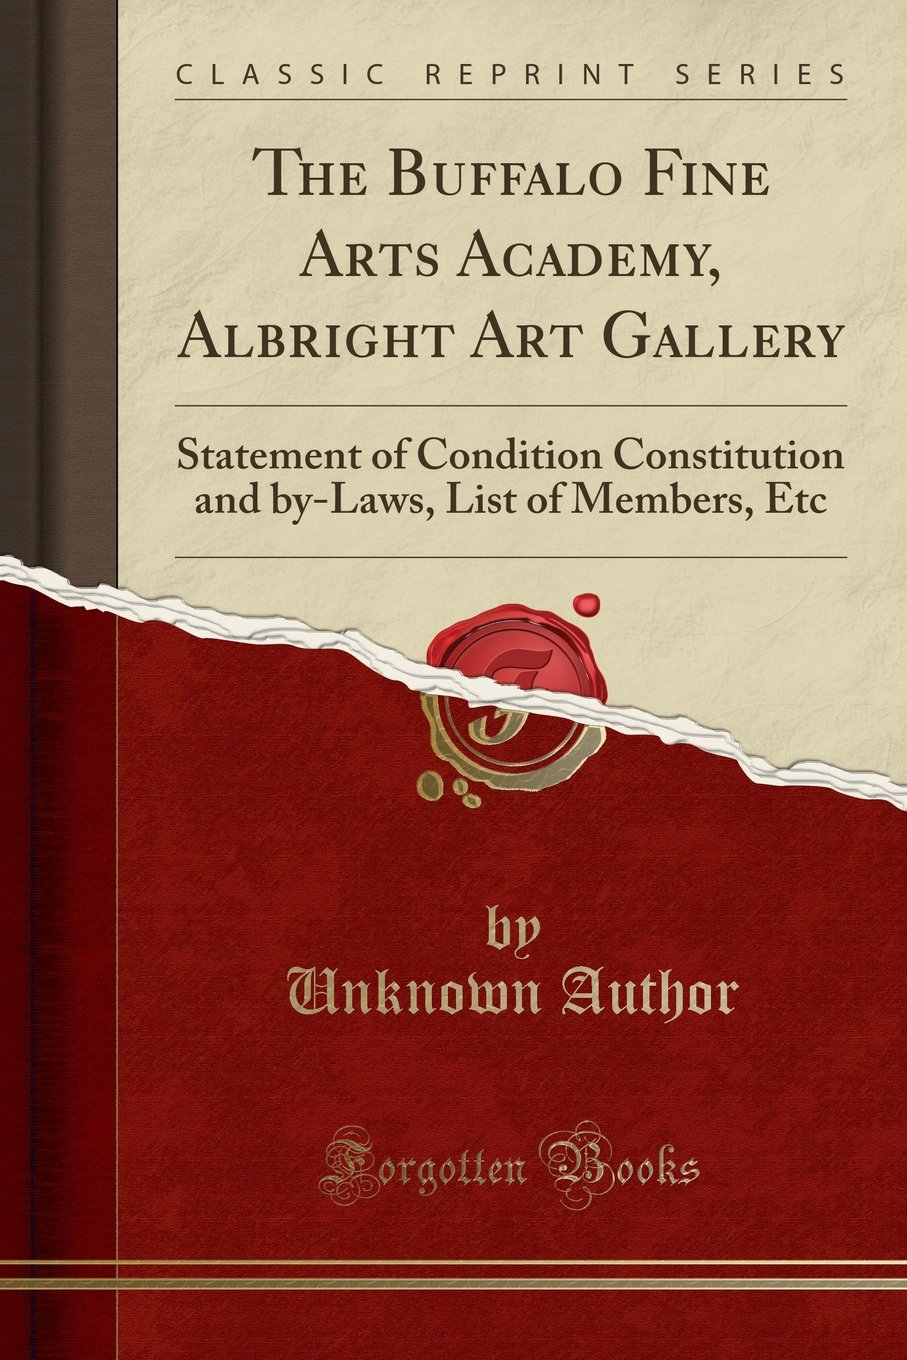 Read Online The Buffalo Fine Arts Academy, Albright Art Gallery: Statement of Condition Constitution and by-Laws, List of Members, Etc (Classic Reprint) PDF